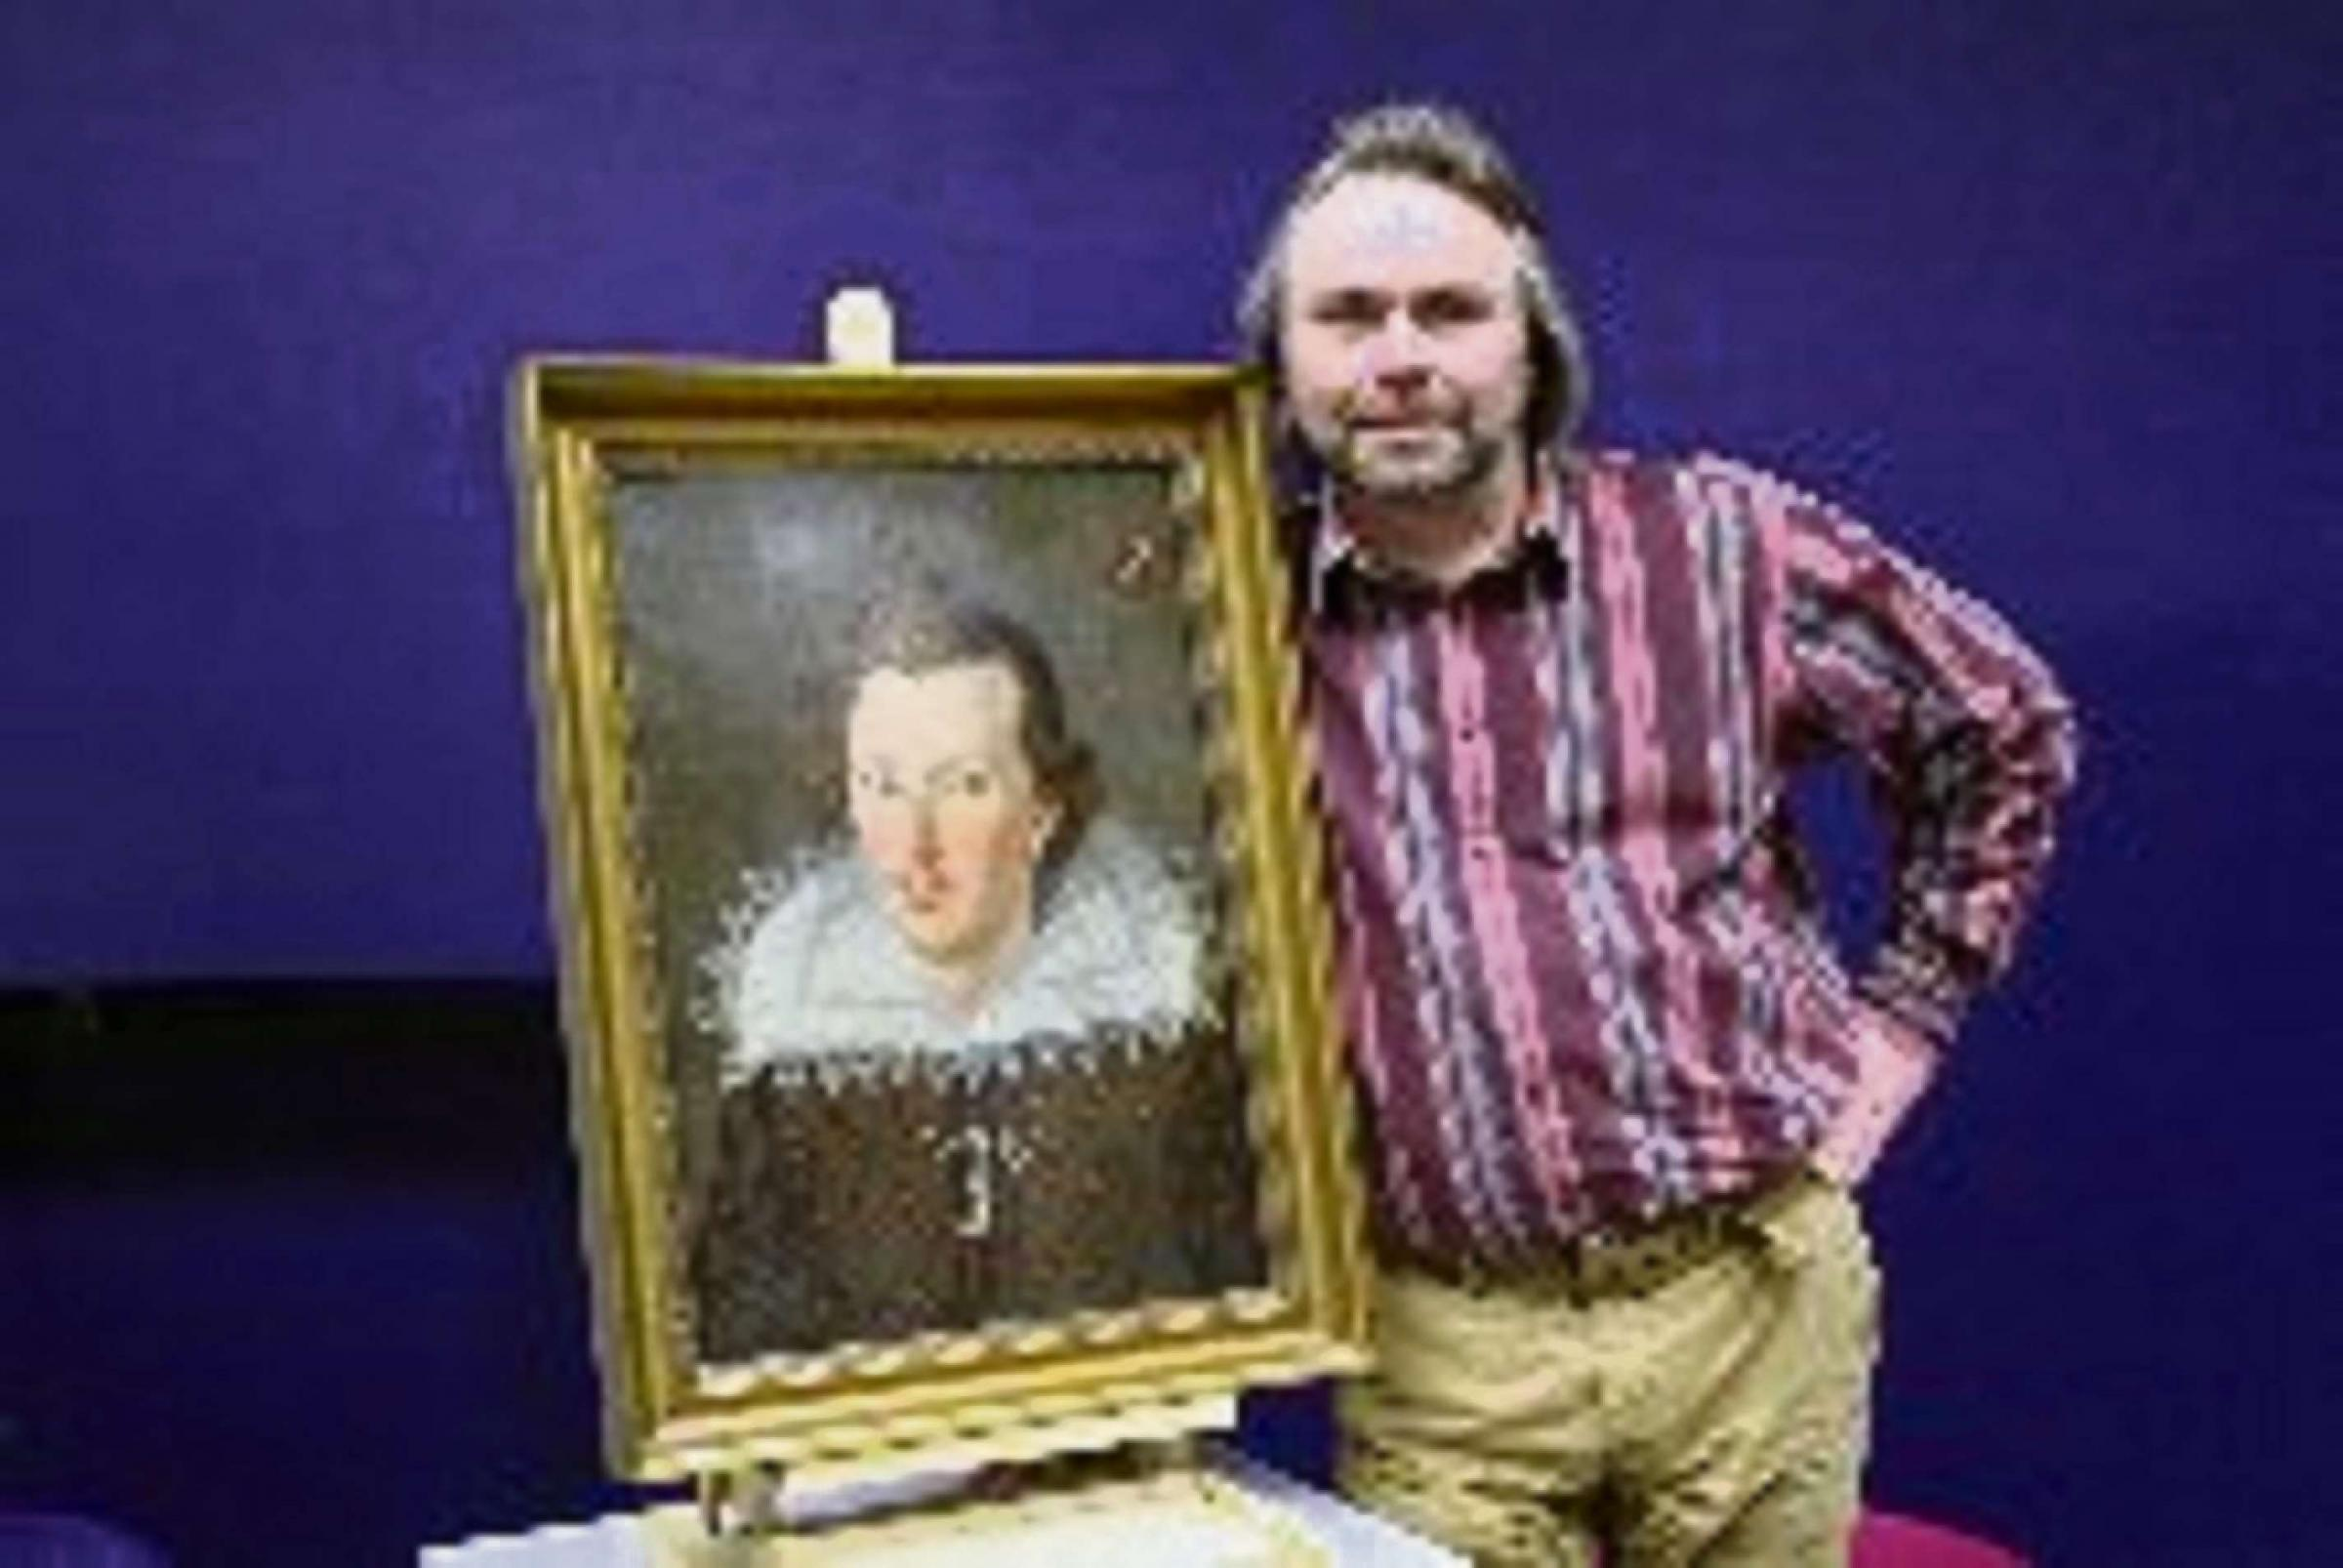 Simon Stirling with newly discovered portrait of the bard. photo courtesy of Goldsmiths, University of London.